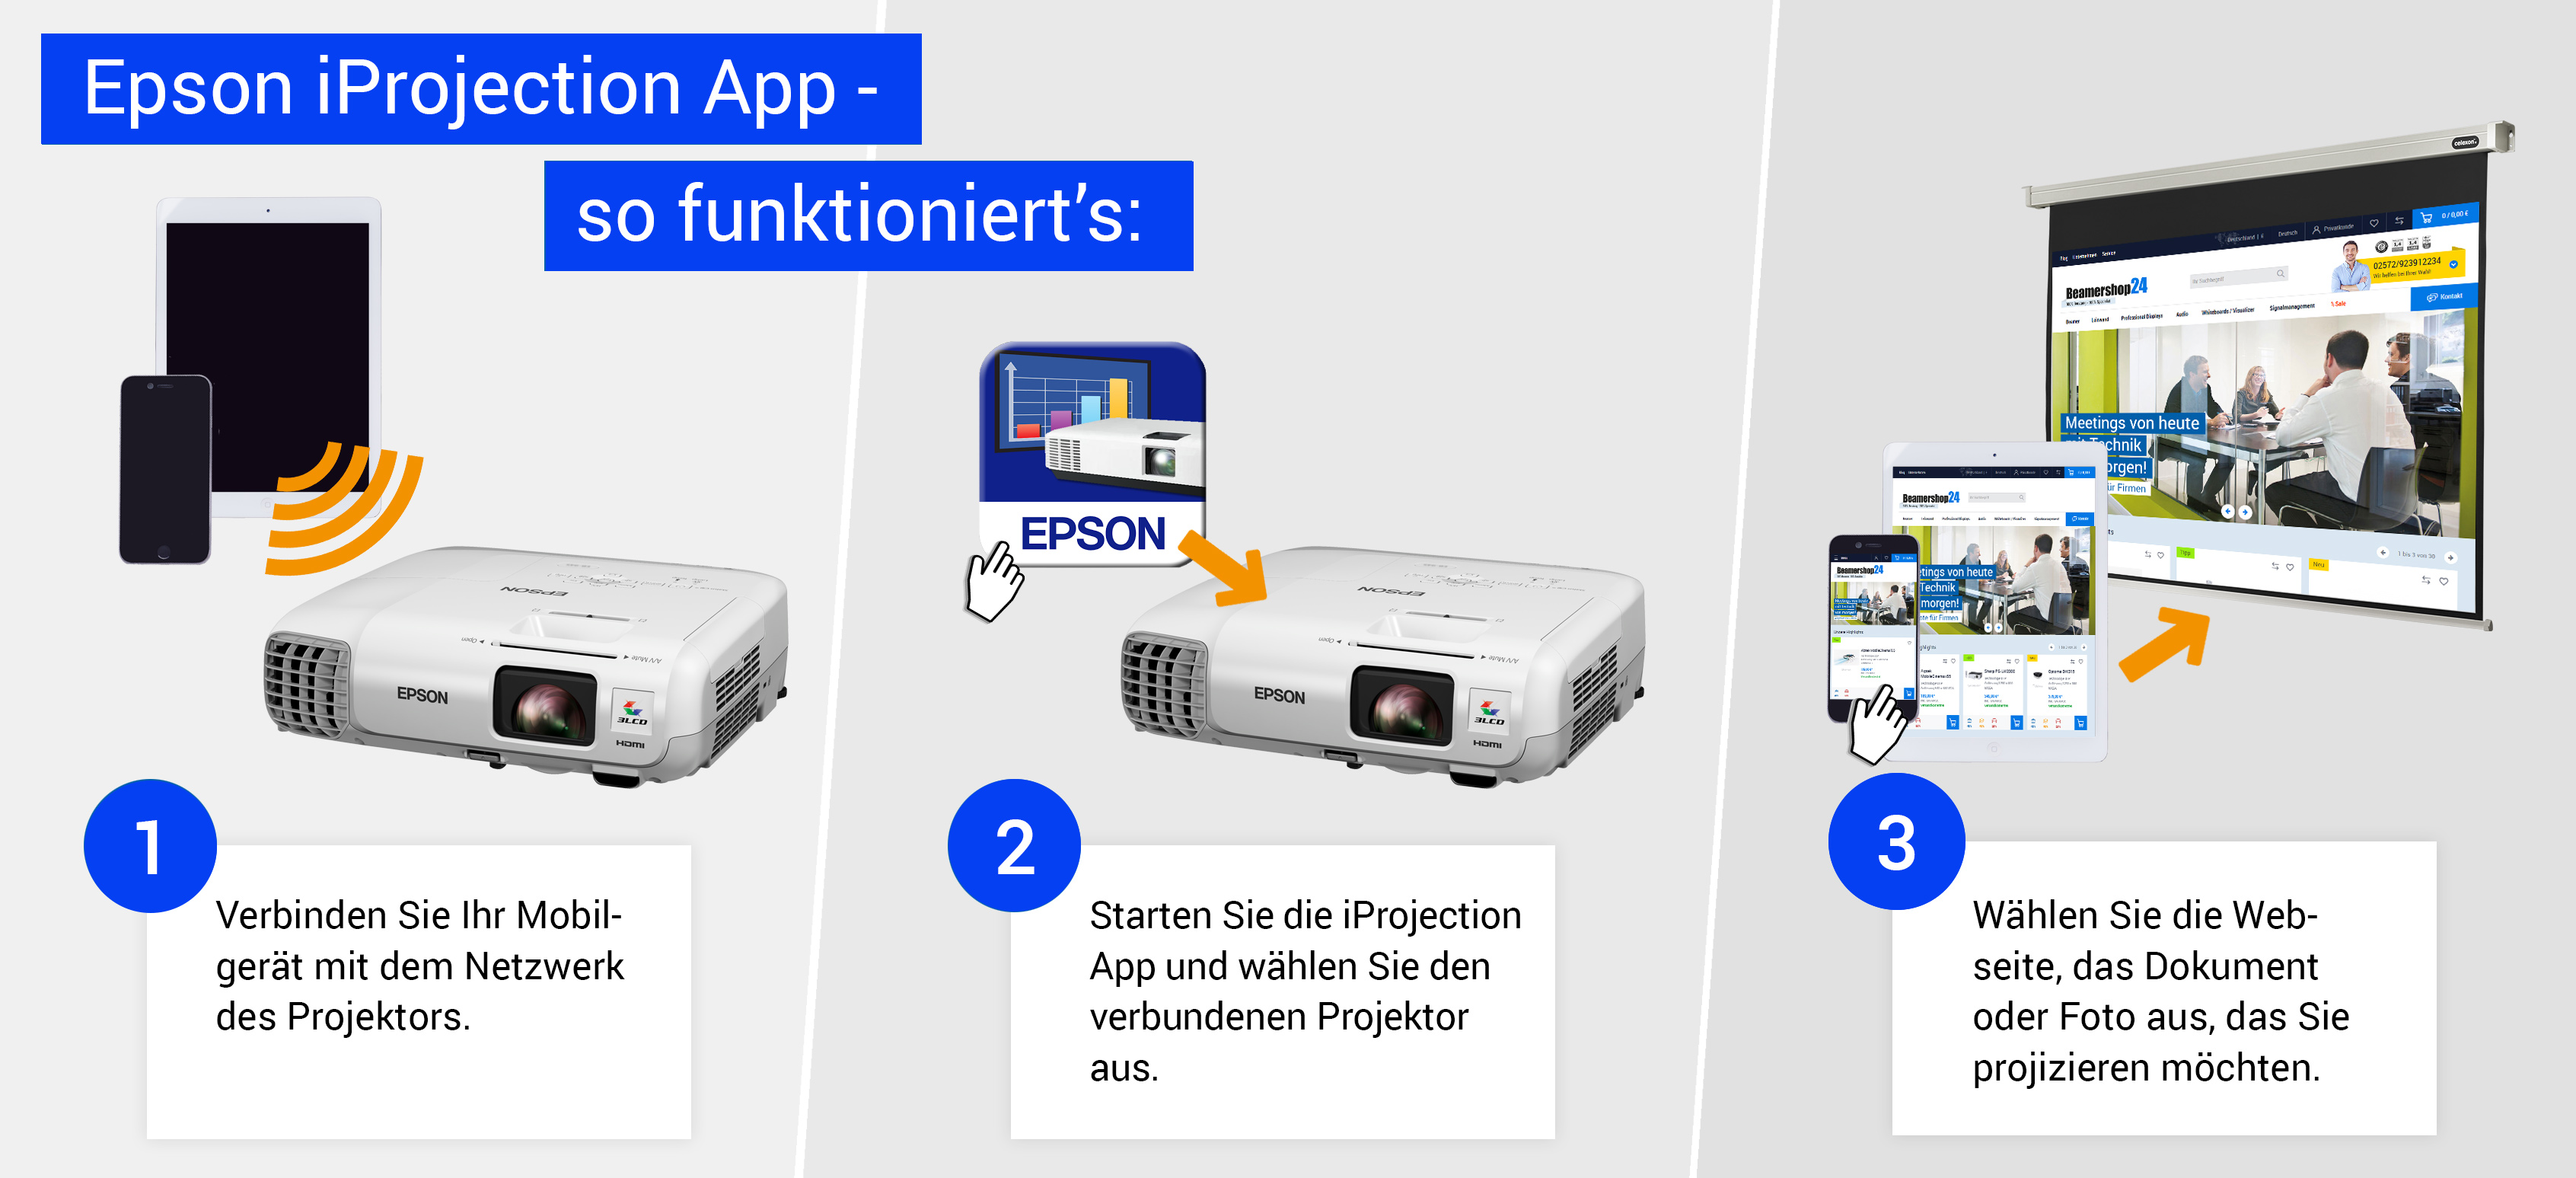 Funktionsweise der Epson iProjection App